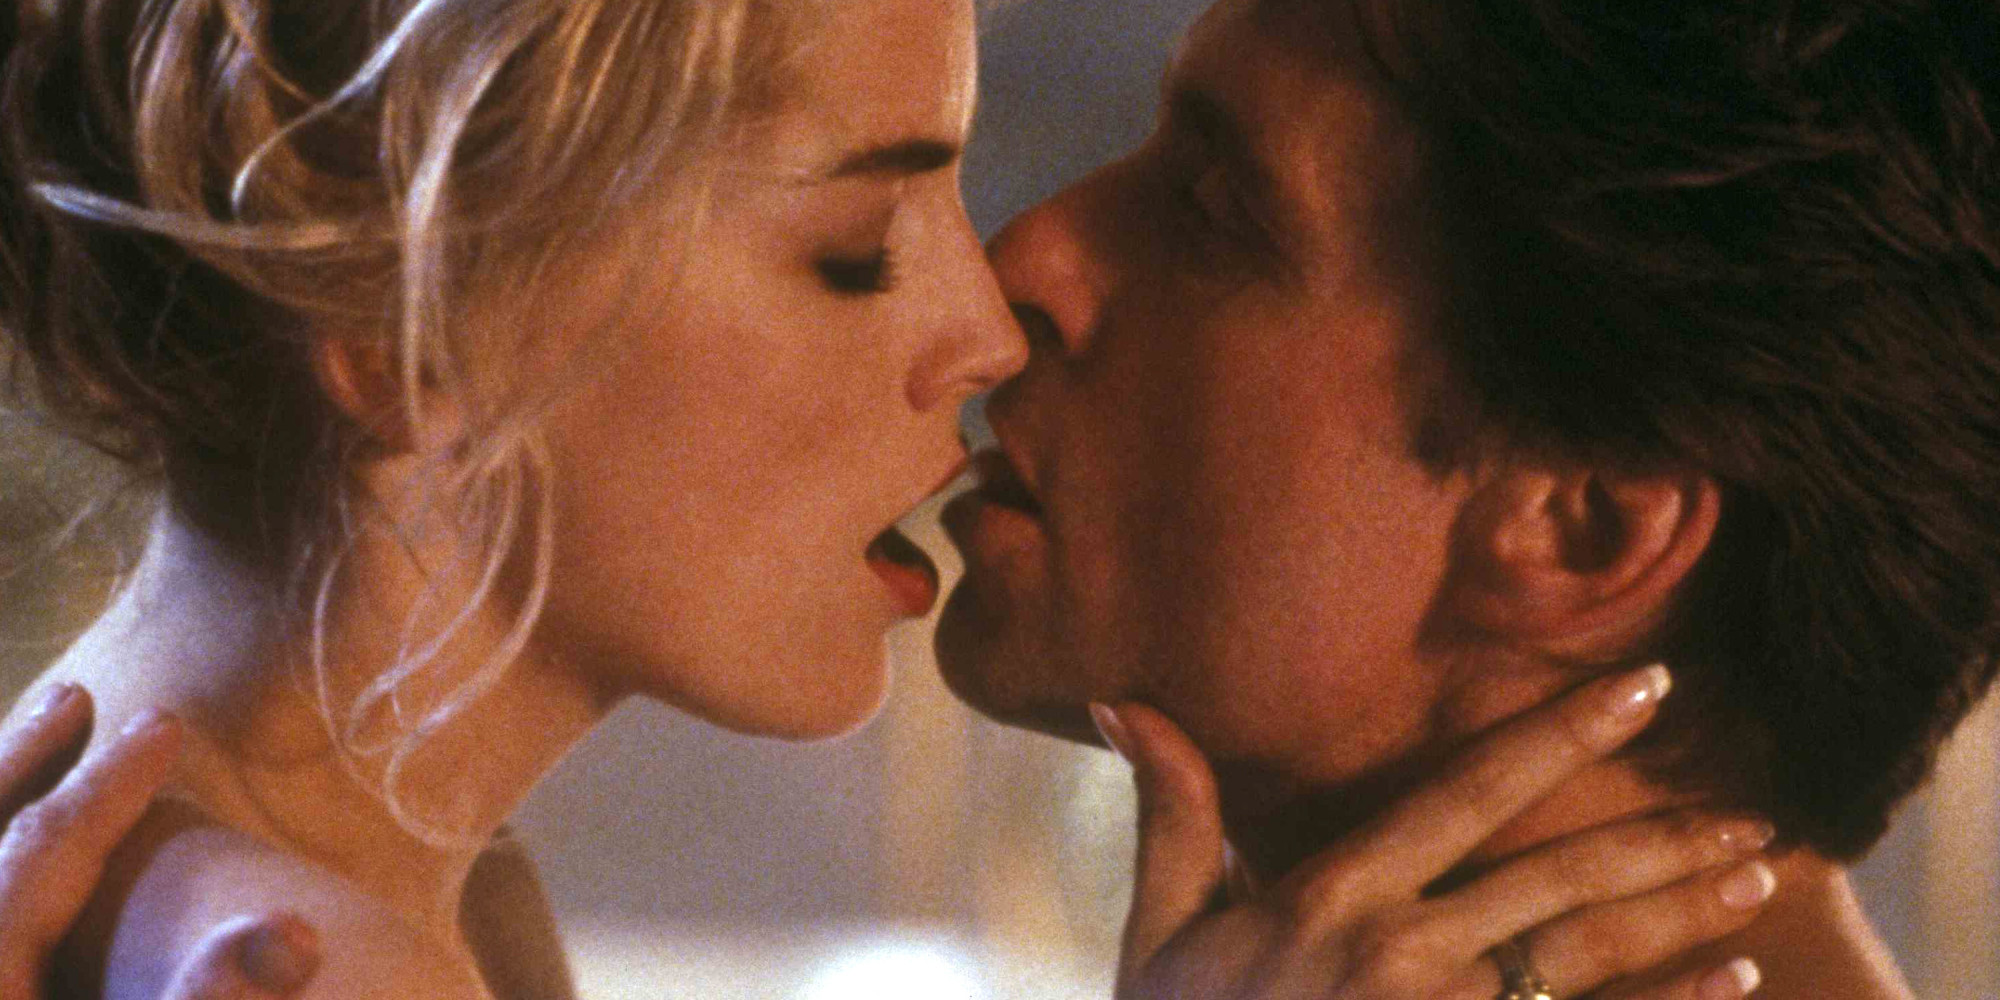 11 classic movies sexier than 'fifty shades of grey' | huffpost